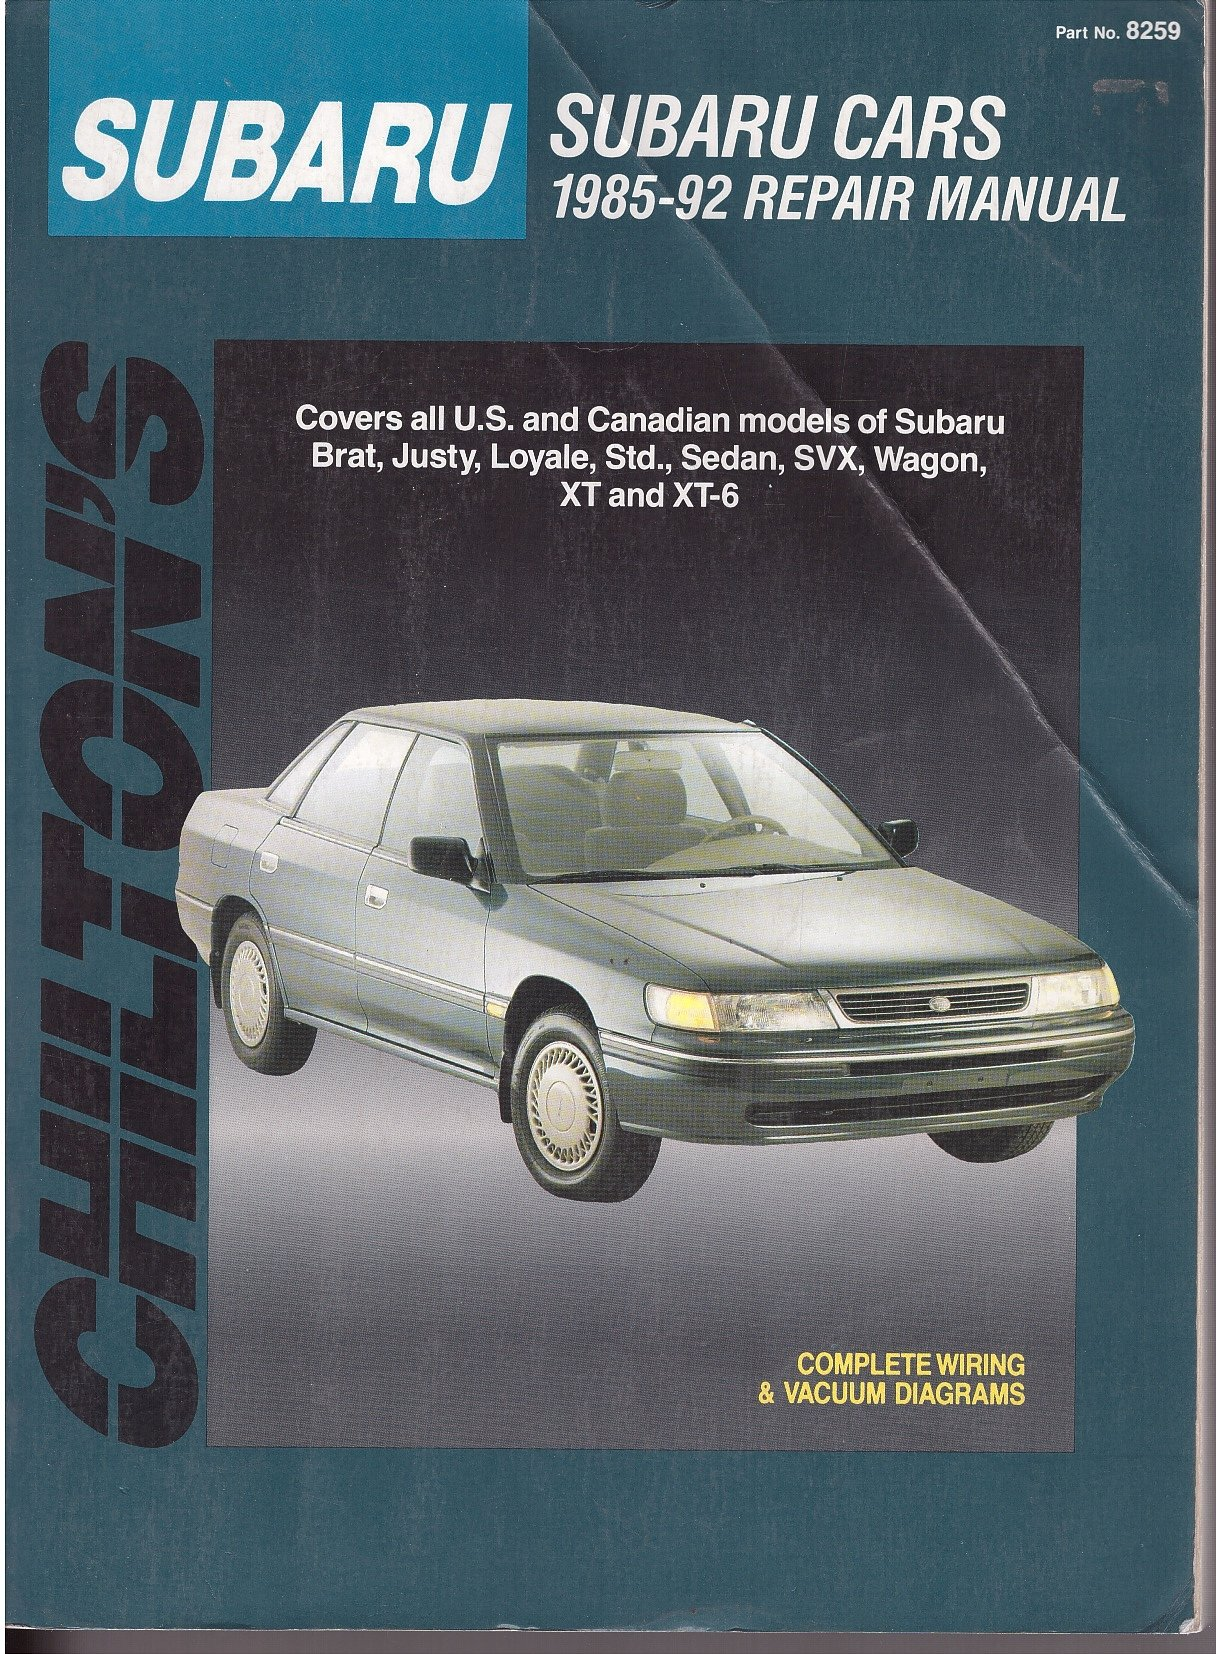 Chiltons Subaru Cars 1985 92 Repair Manual Total Car Care Justy Wiring Schematic Part No 8259 Automotive Editorial Dept 9780801982590 Books